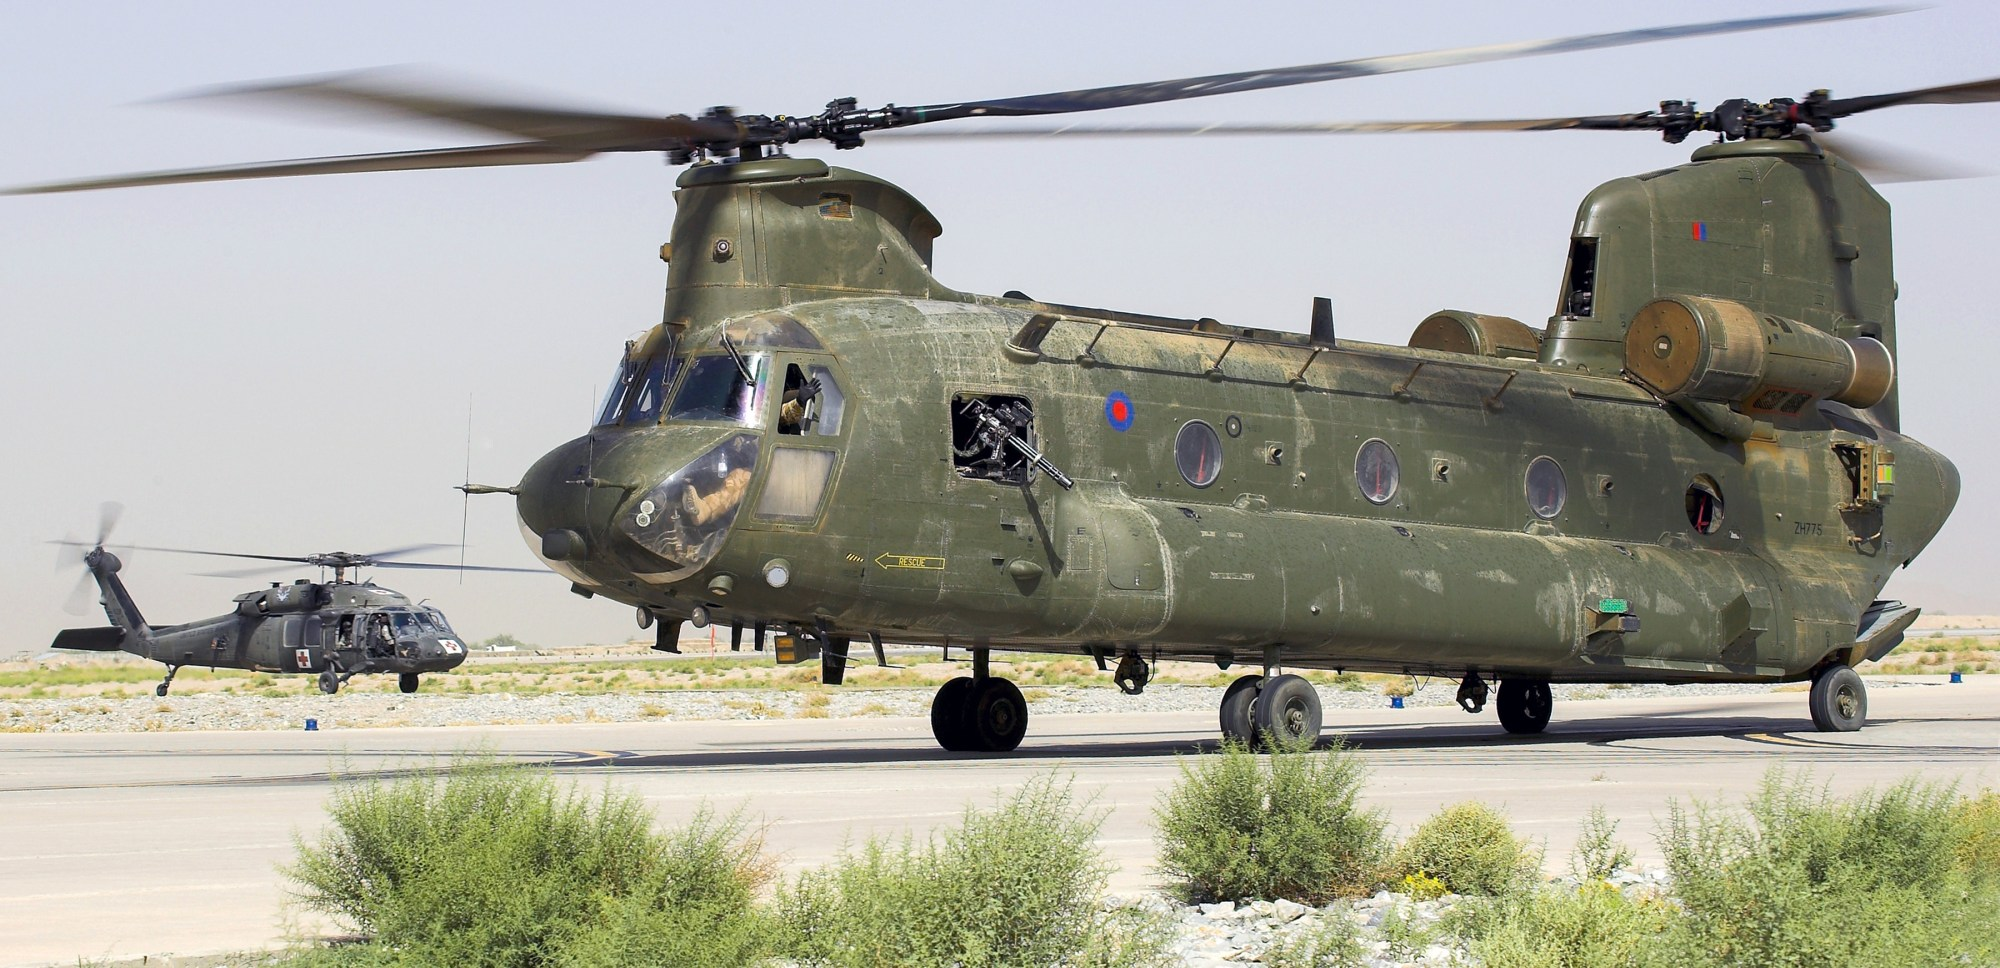 hight resolution of hc2 zh775 with hh 60m medevac in background at kandahar 2010 chinook helicopters